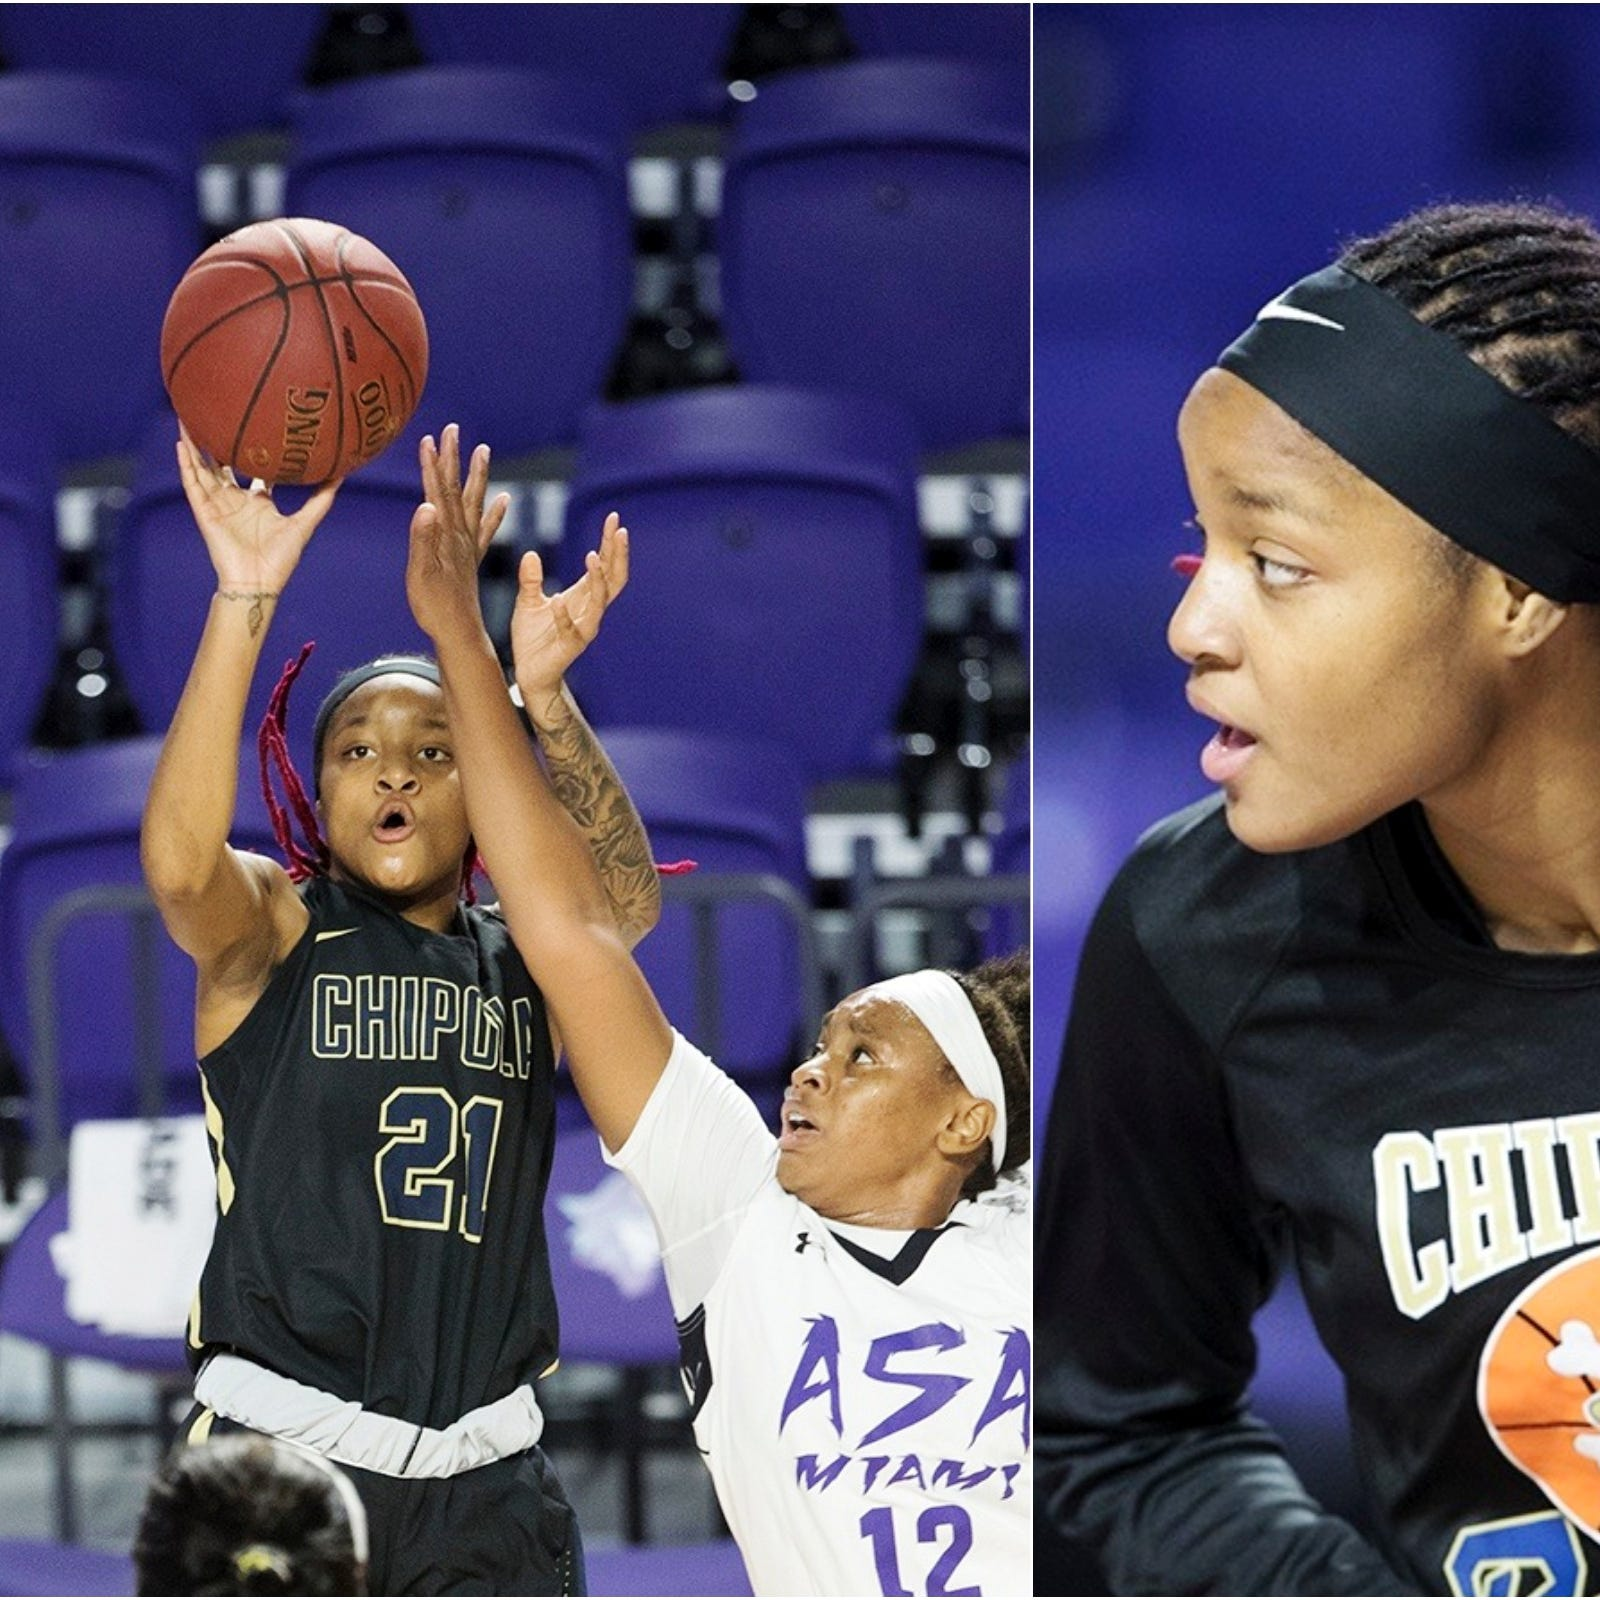 Dunbar alum Dekeriya Patterson embracing second chance, transitioning from LSU to JUCO